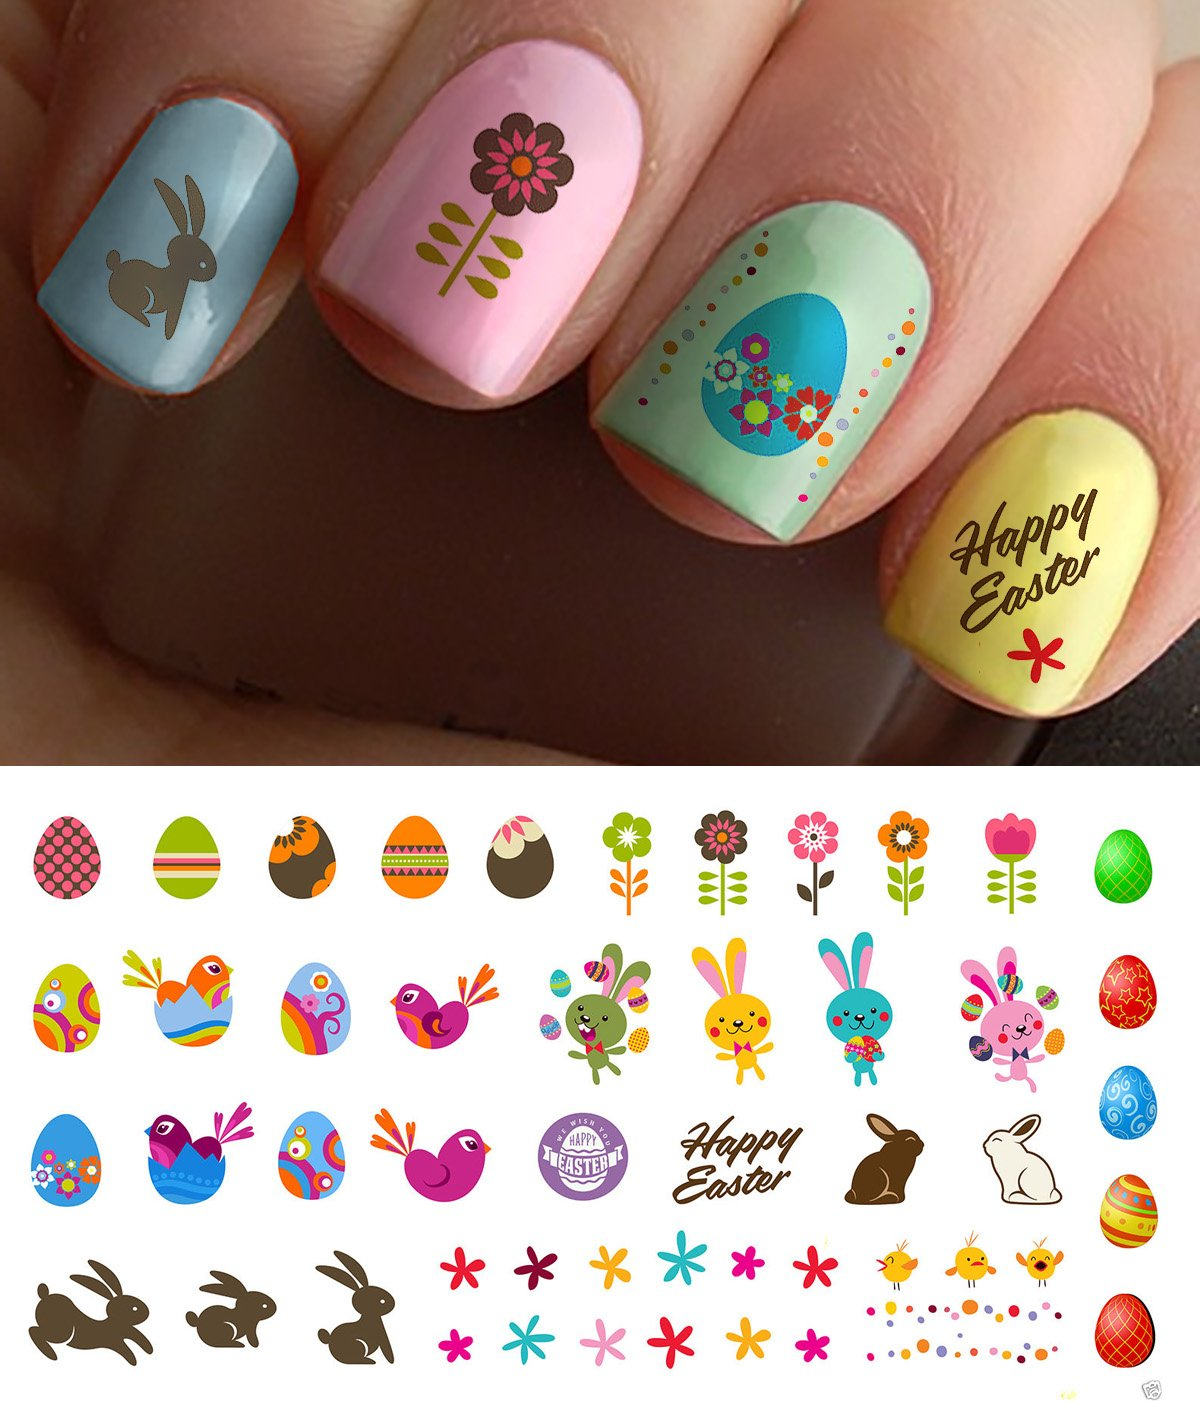 "Easter Nail Decals Assortment #1 Water Slide Nail Art Decals - Salon Quality 5.5"" X 3"" Sheet!"